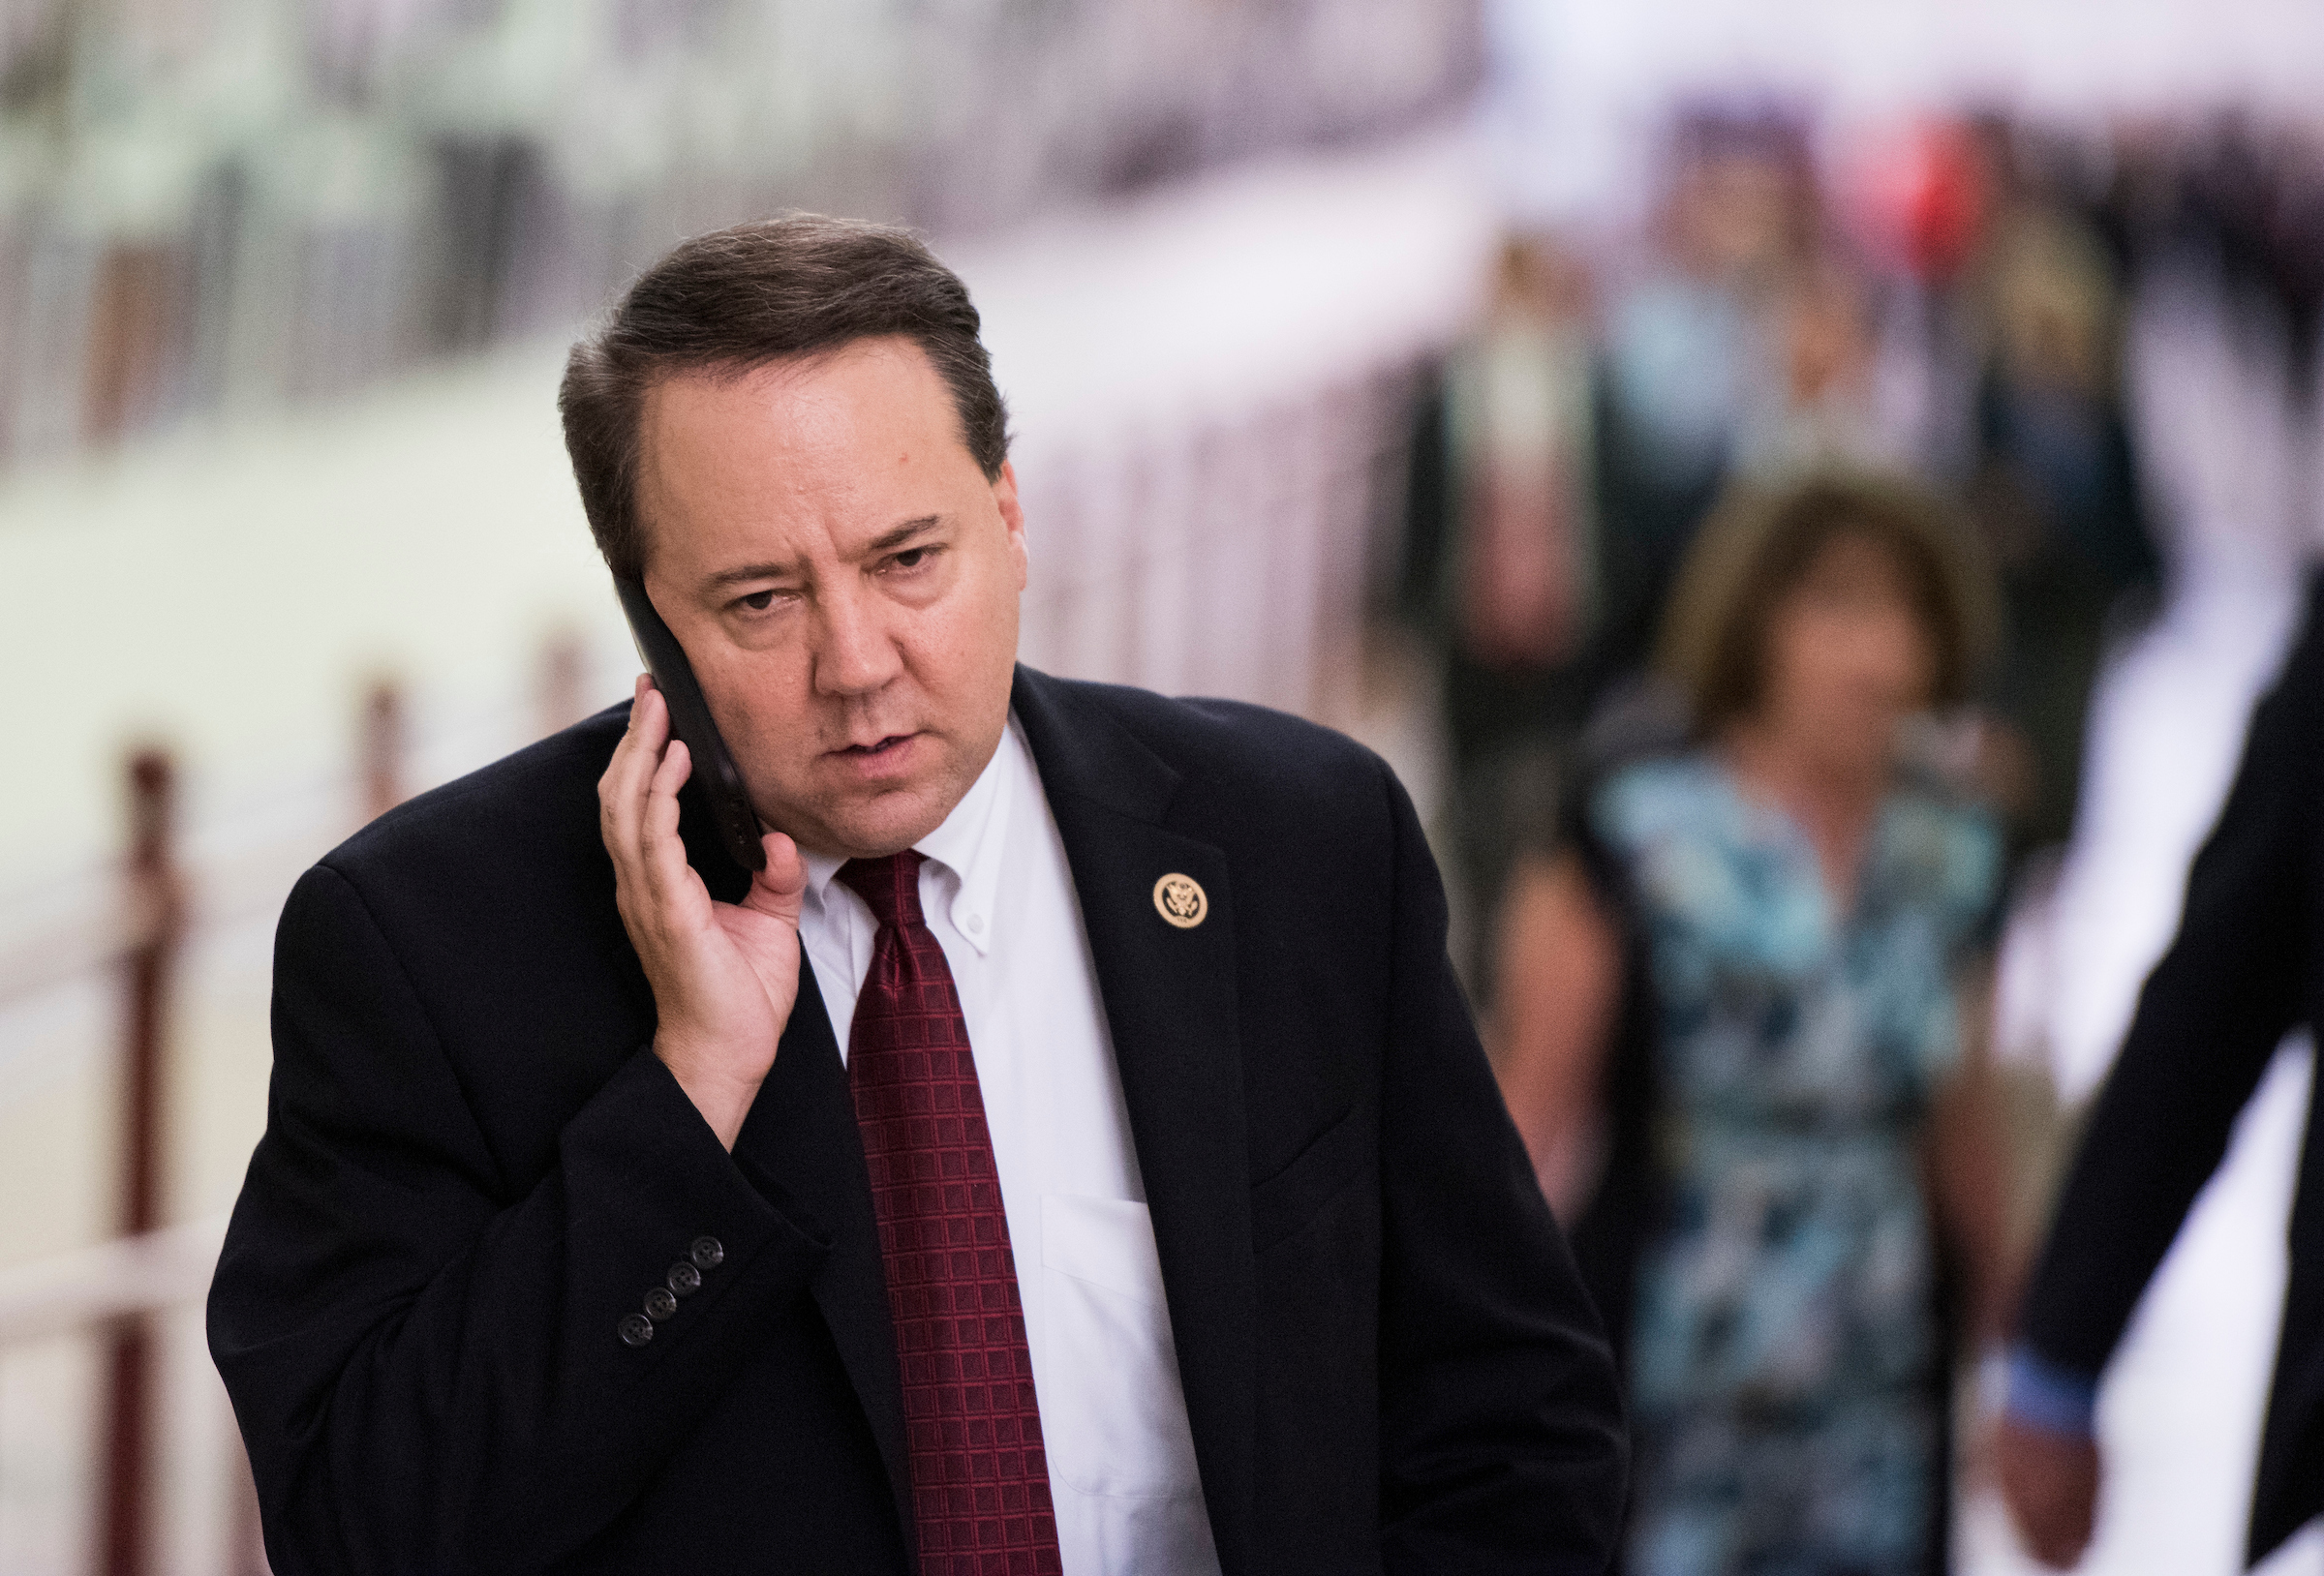 Rep. Pat Tiberi was a veteran member of the Ways and Means Committee. (Bill Clark/Roll Call)